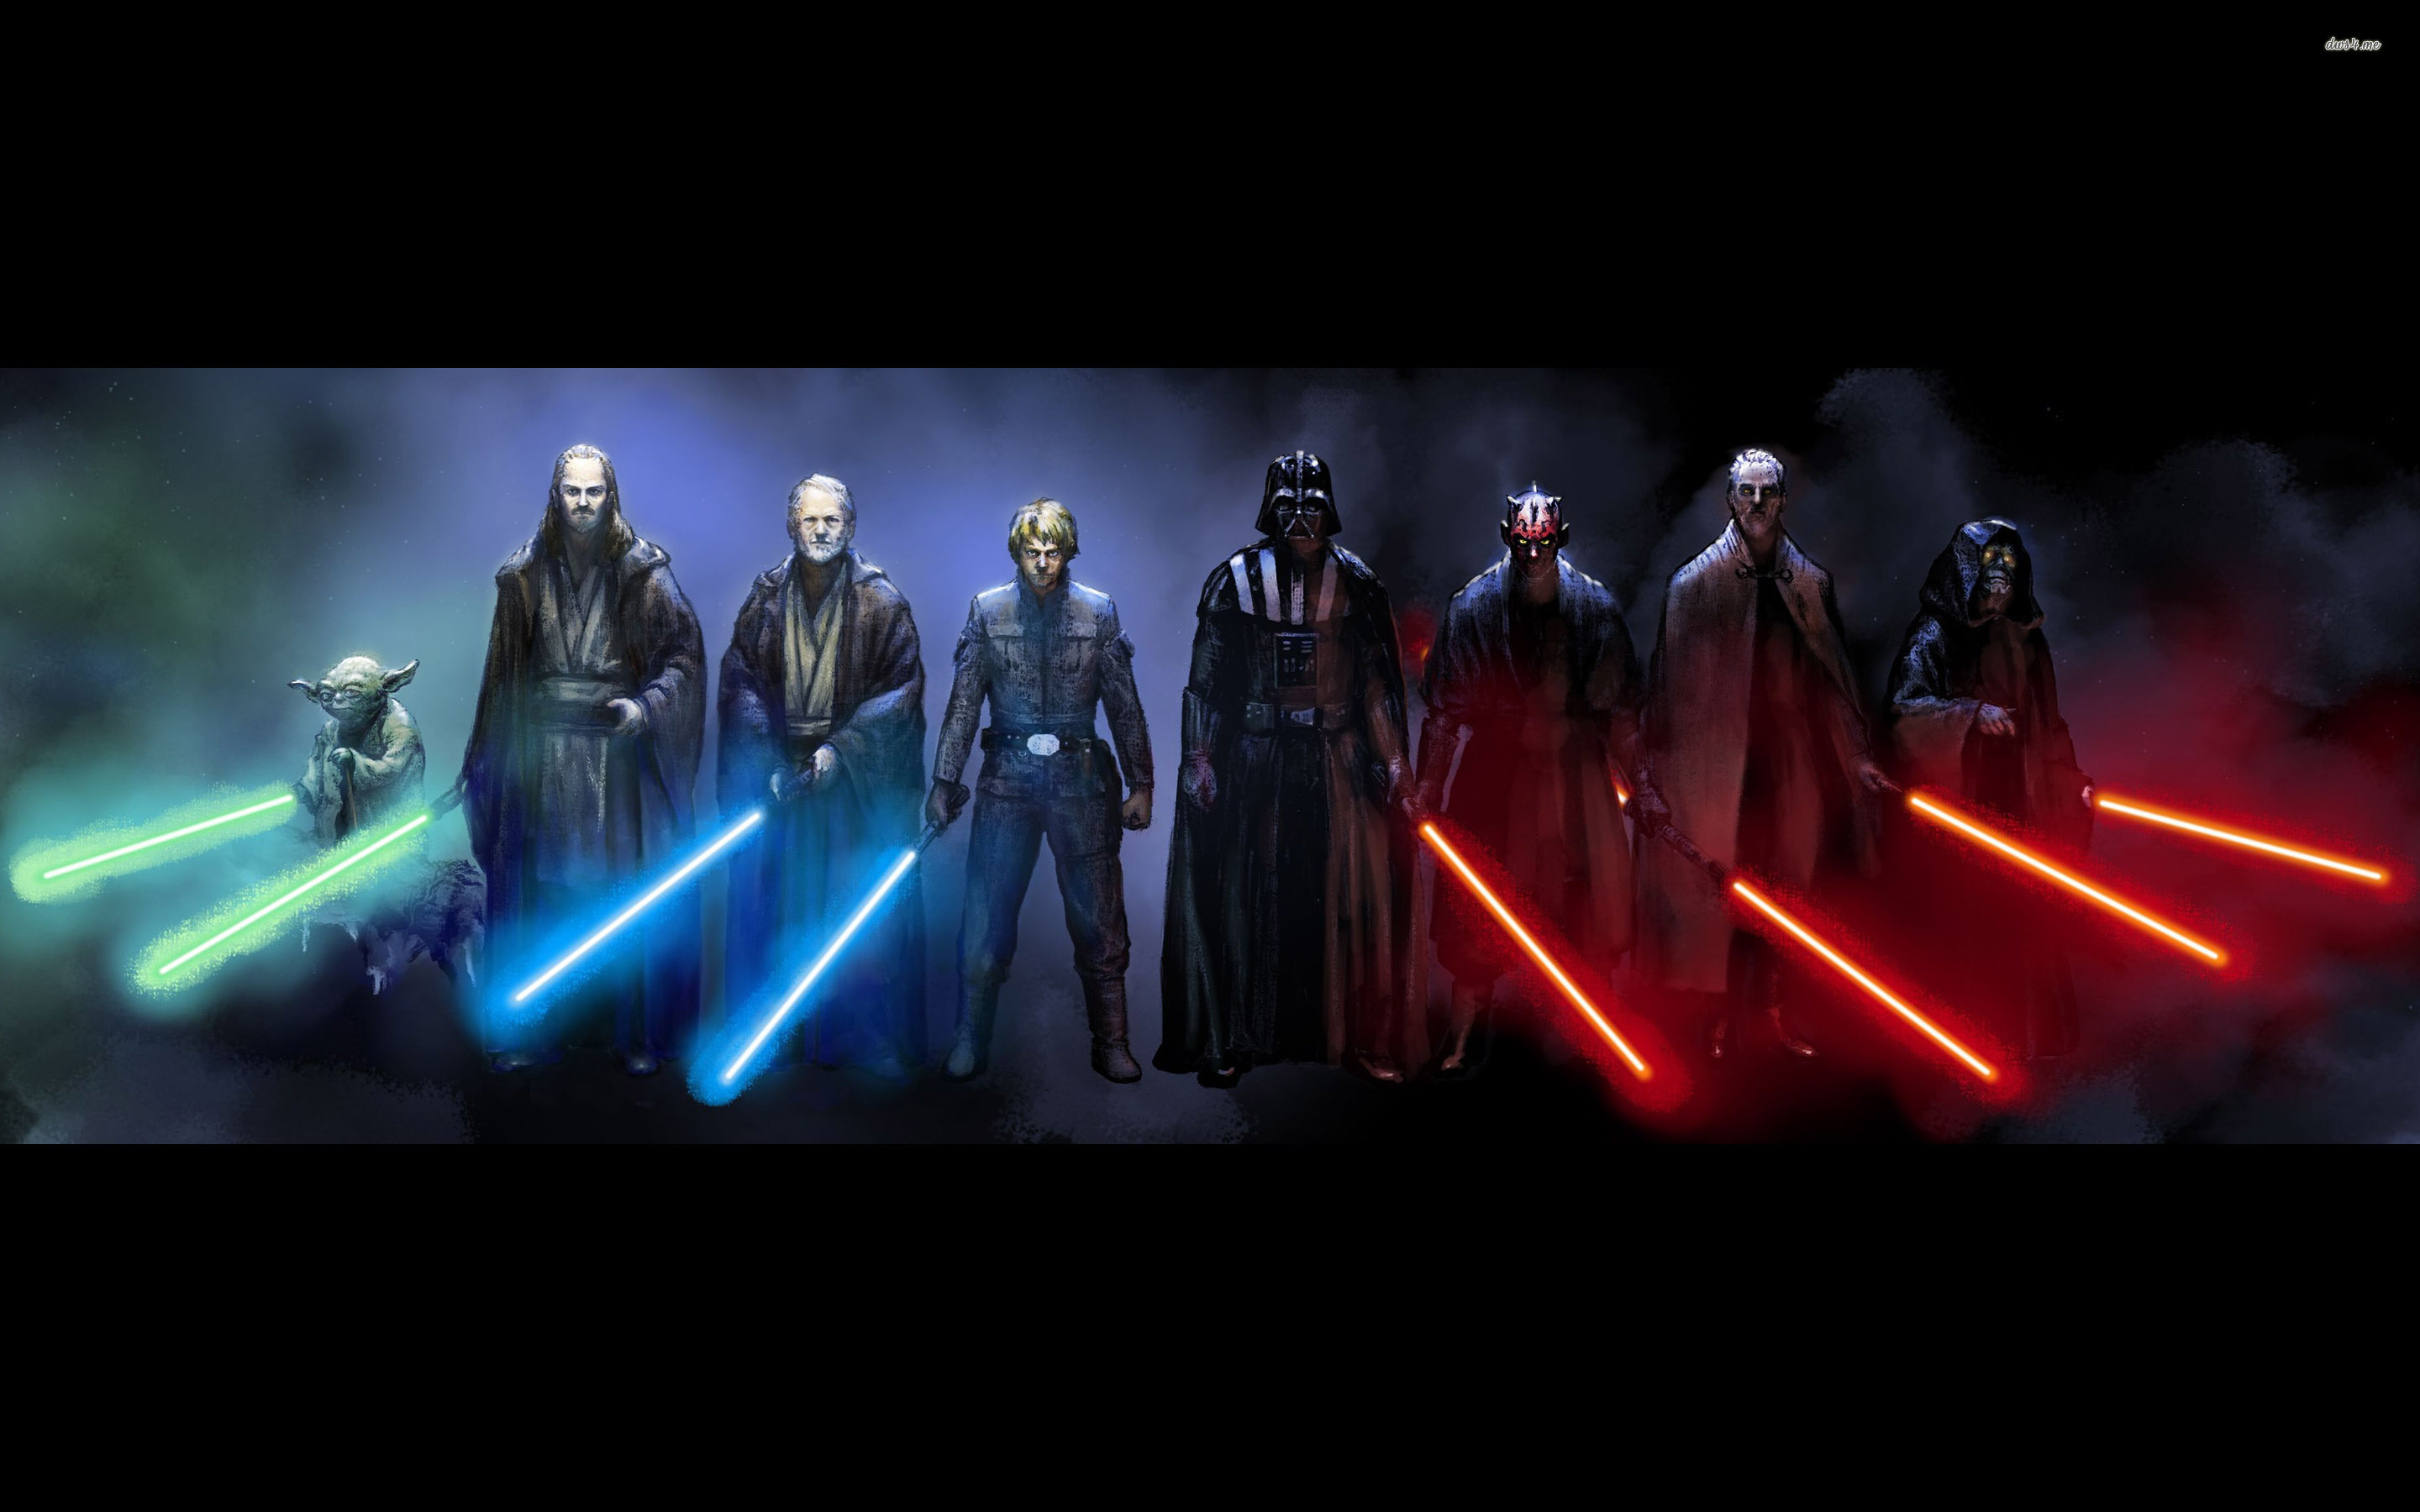 Fonds dcran Star Wars tous les wallpapers Star Wars 2880x1800